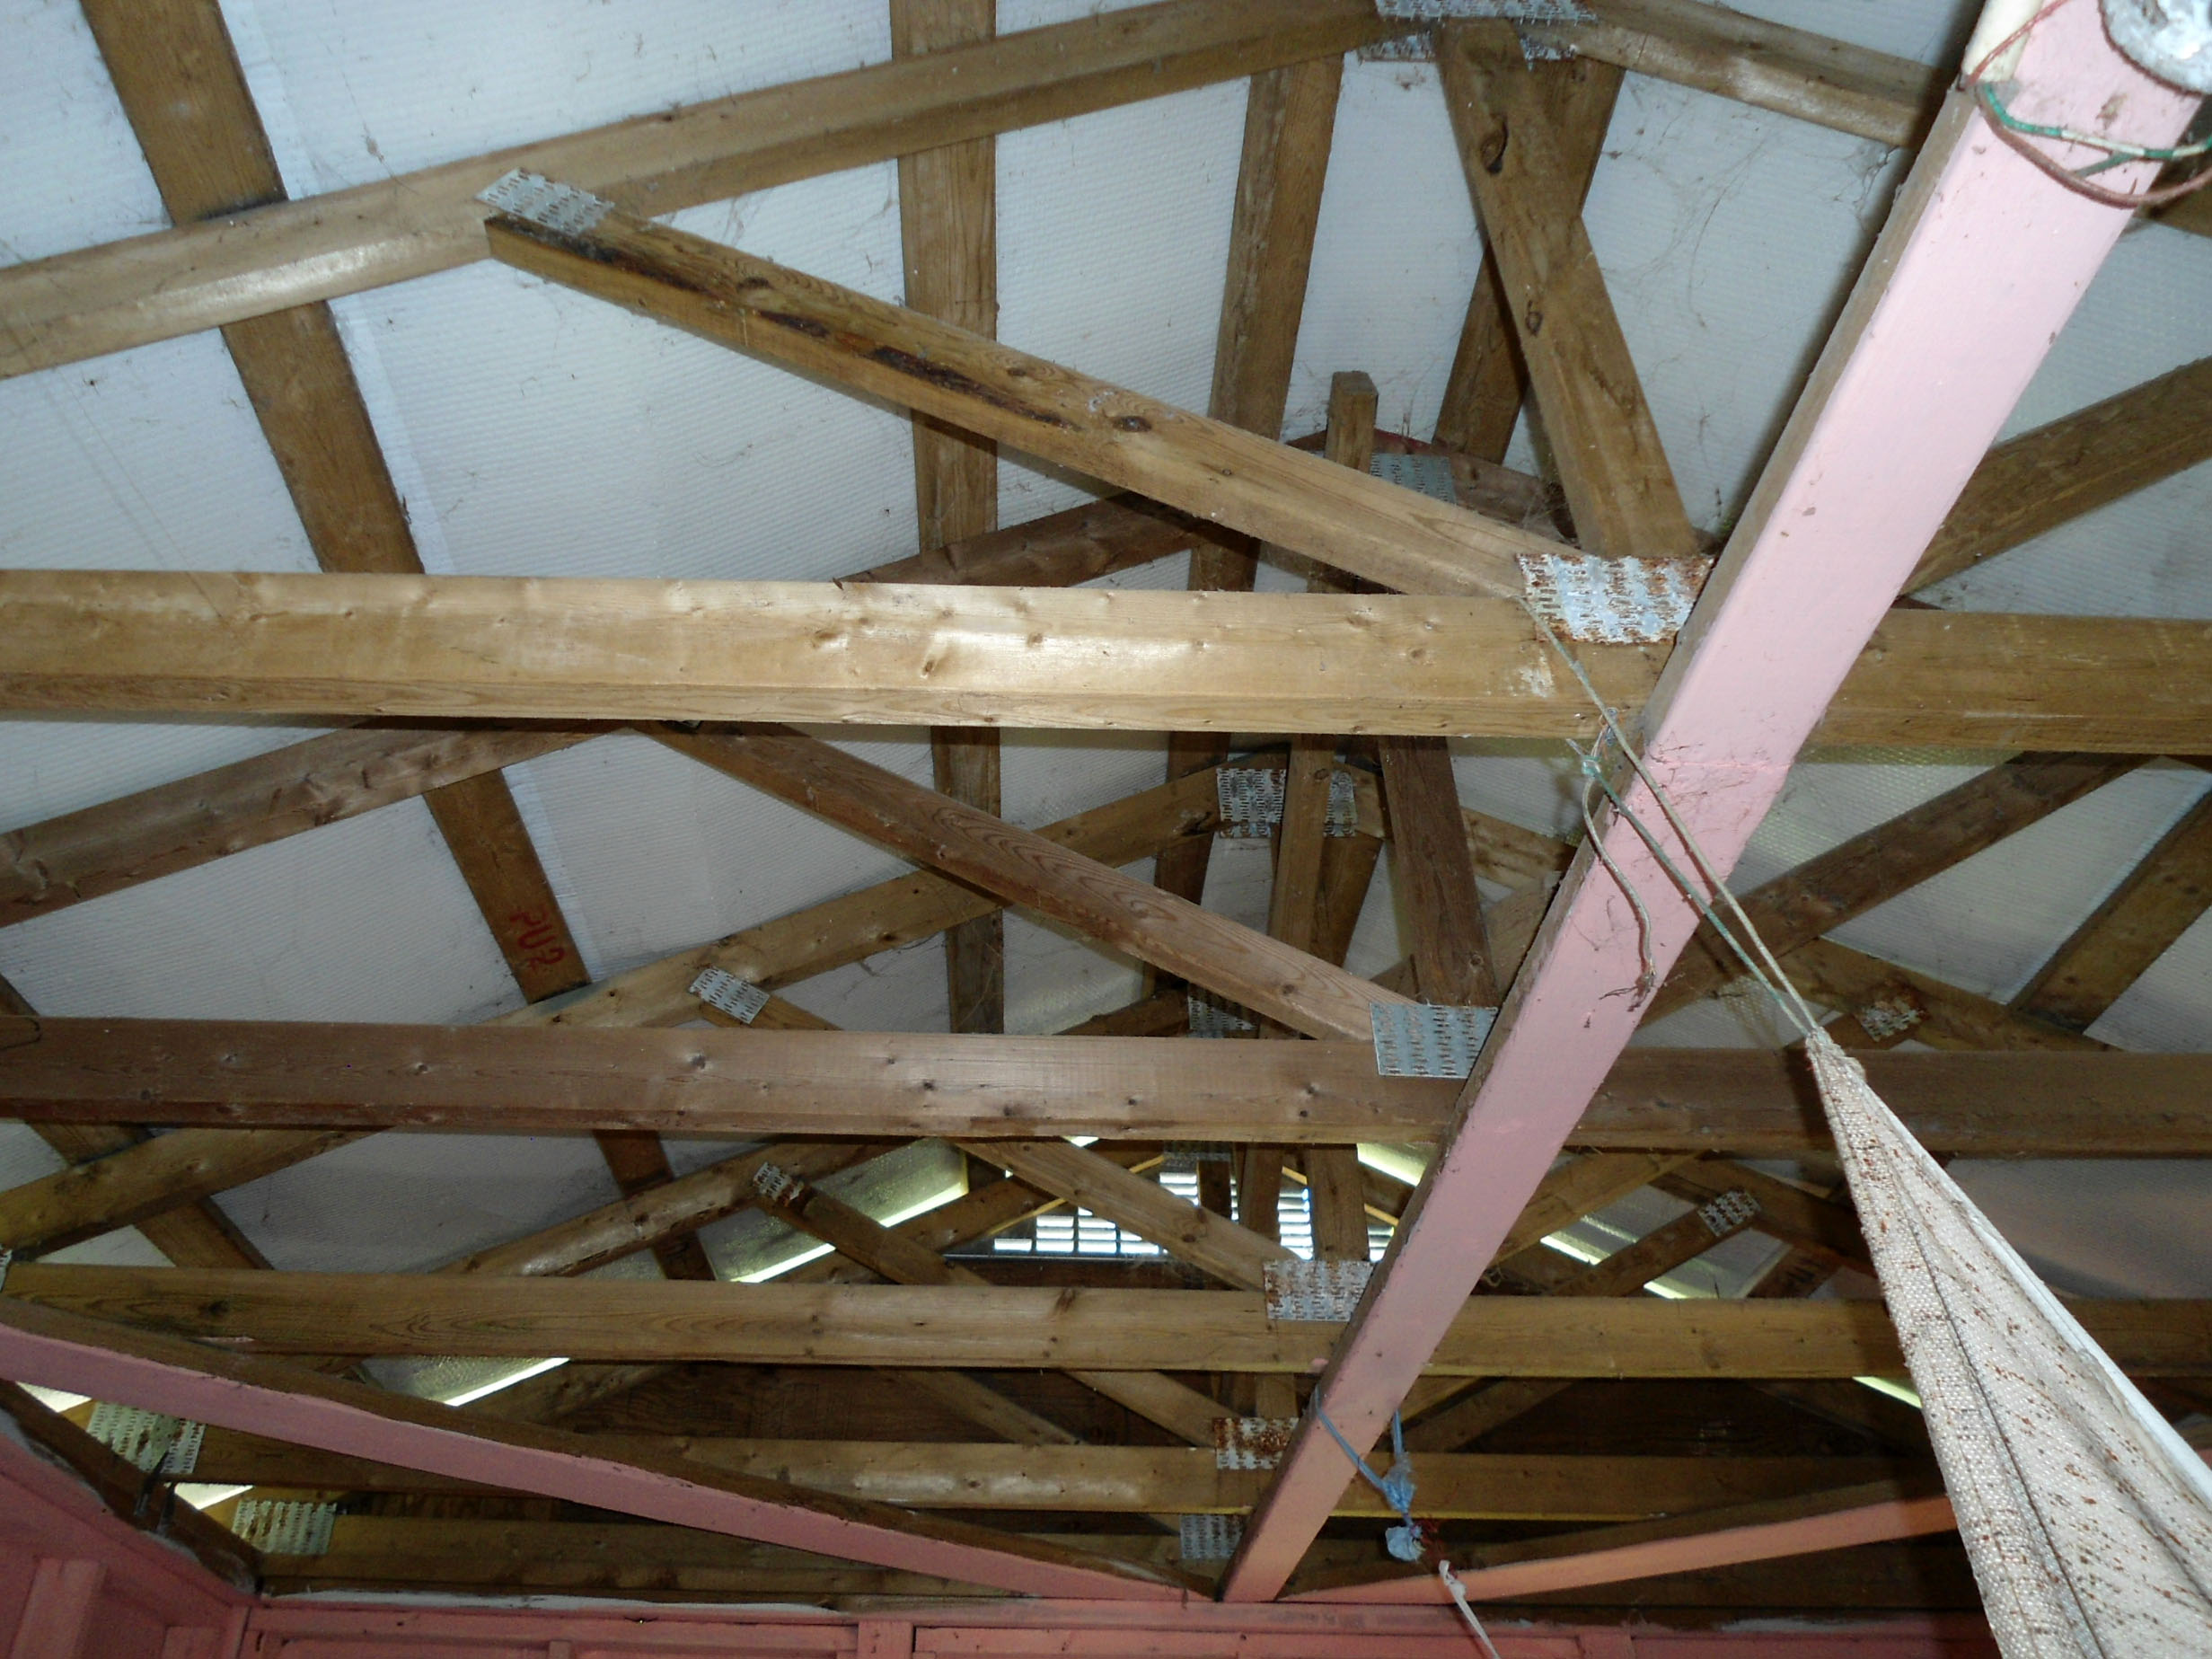 src/web/static/pictures/shelters/12/CRC A_Roof_Trusses.jpg